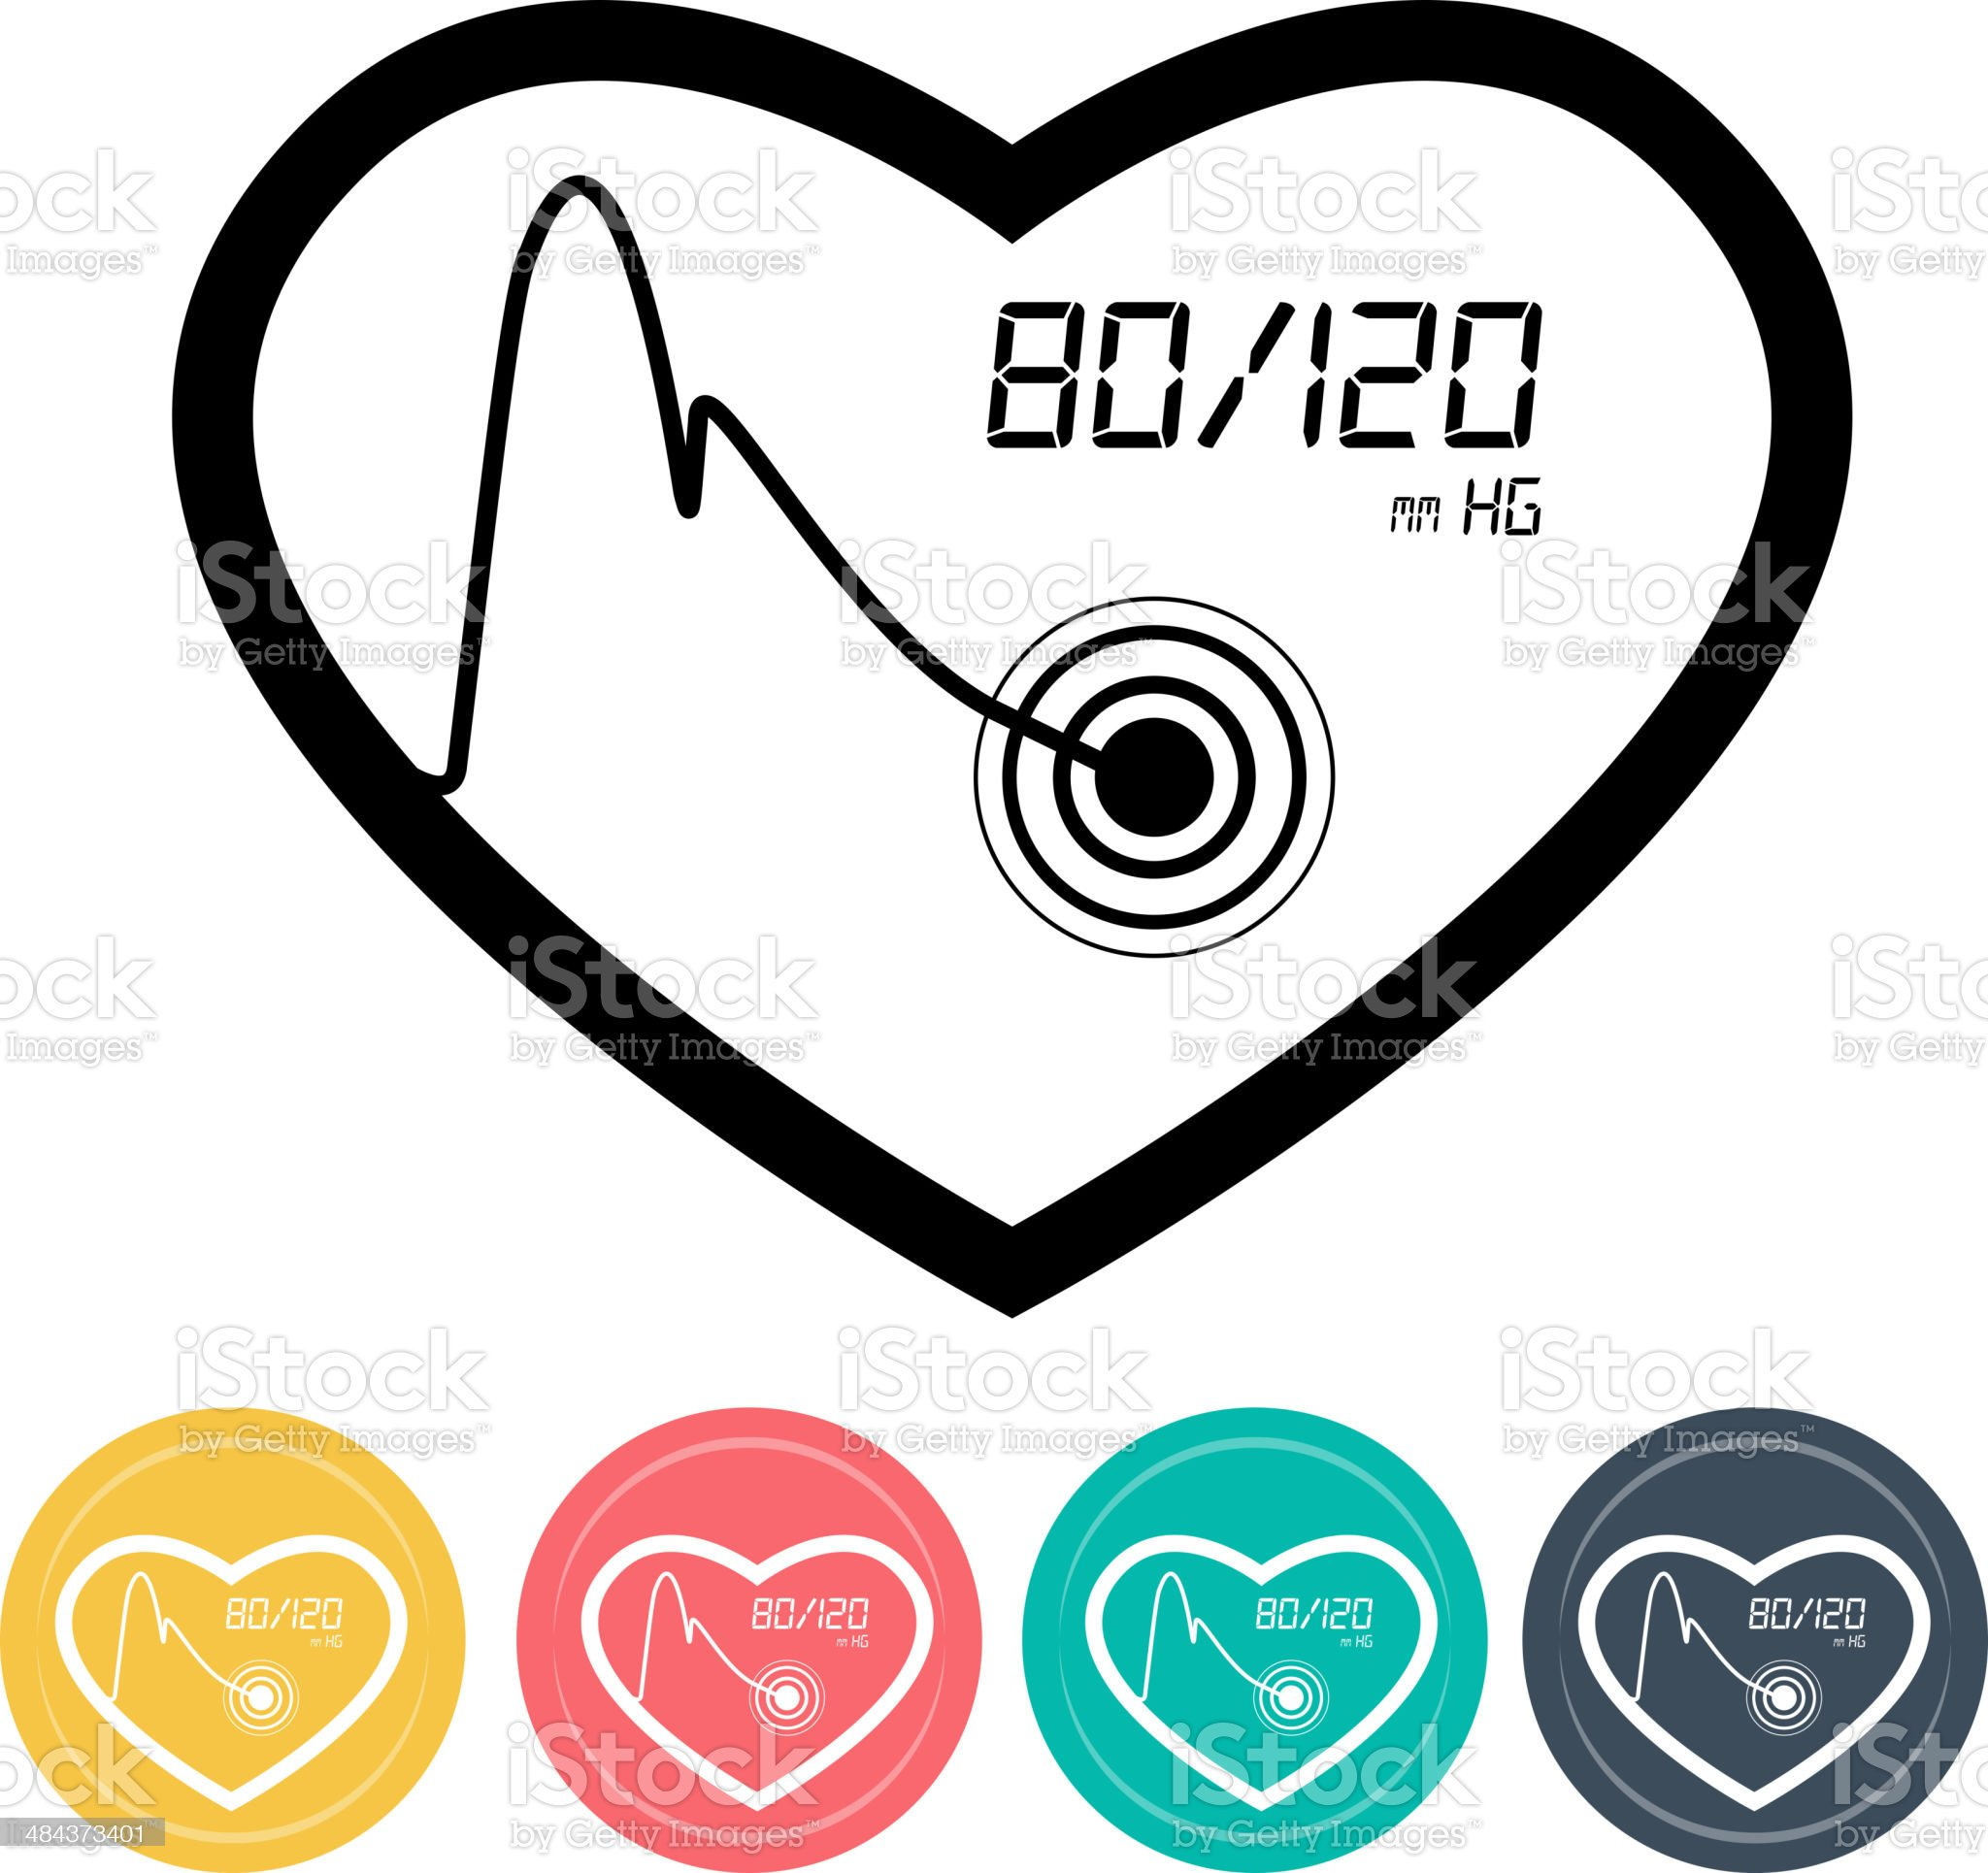 Blood Pressure Monitoring Icon royalty-free stock vector art